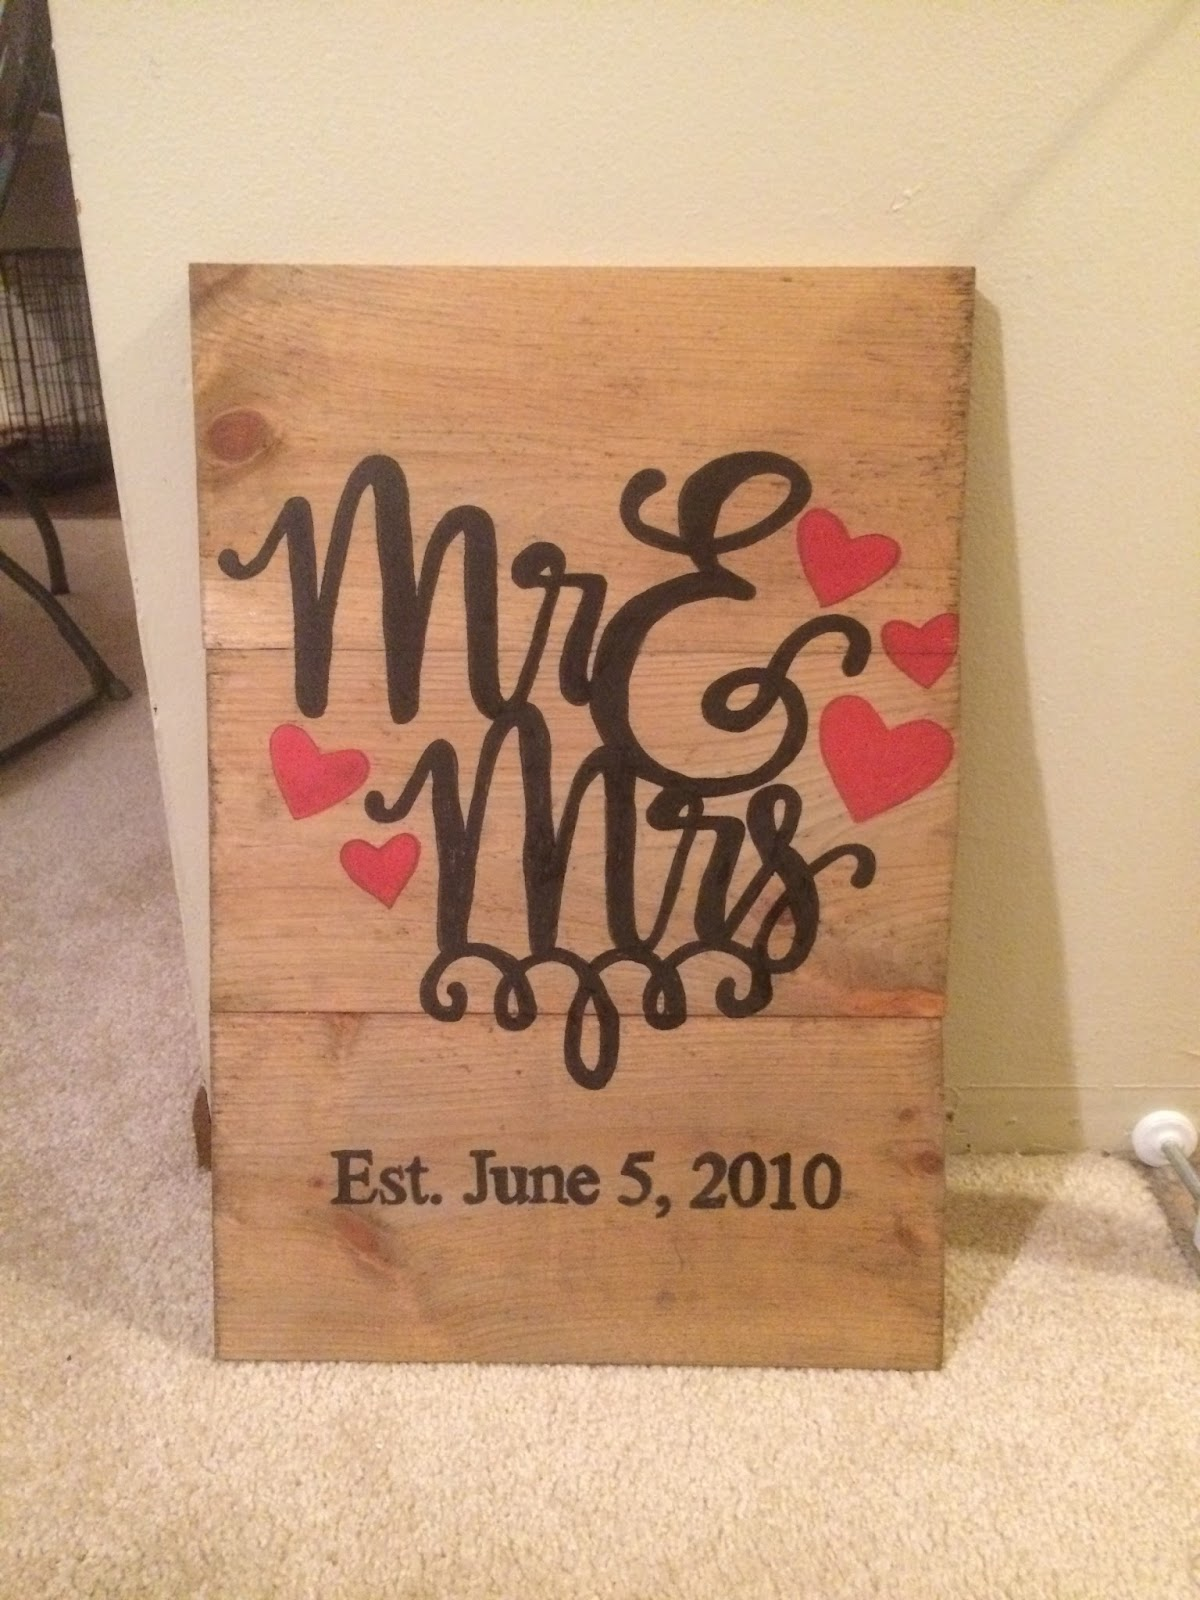 Young not powerless diy wedding vow wood panel boards before i get into the nitty gritty of how to do this yourself here is how the decorative panel turned out solutioingenieria Images